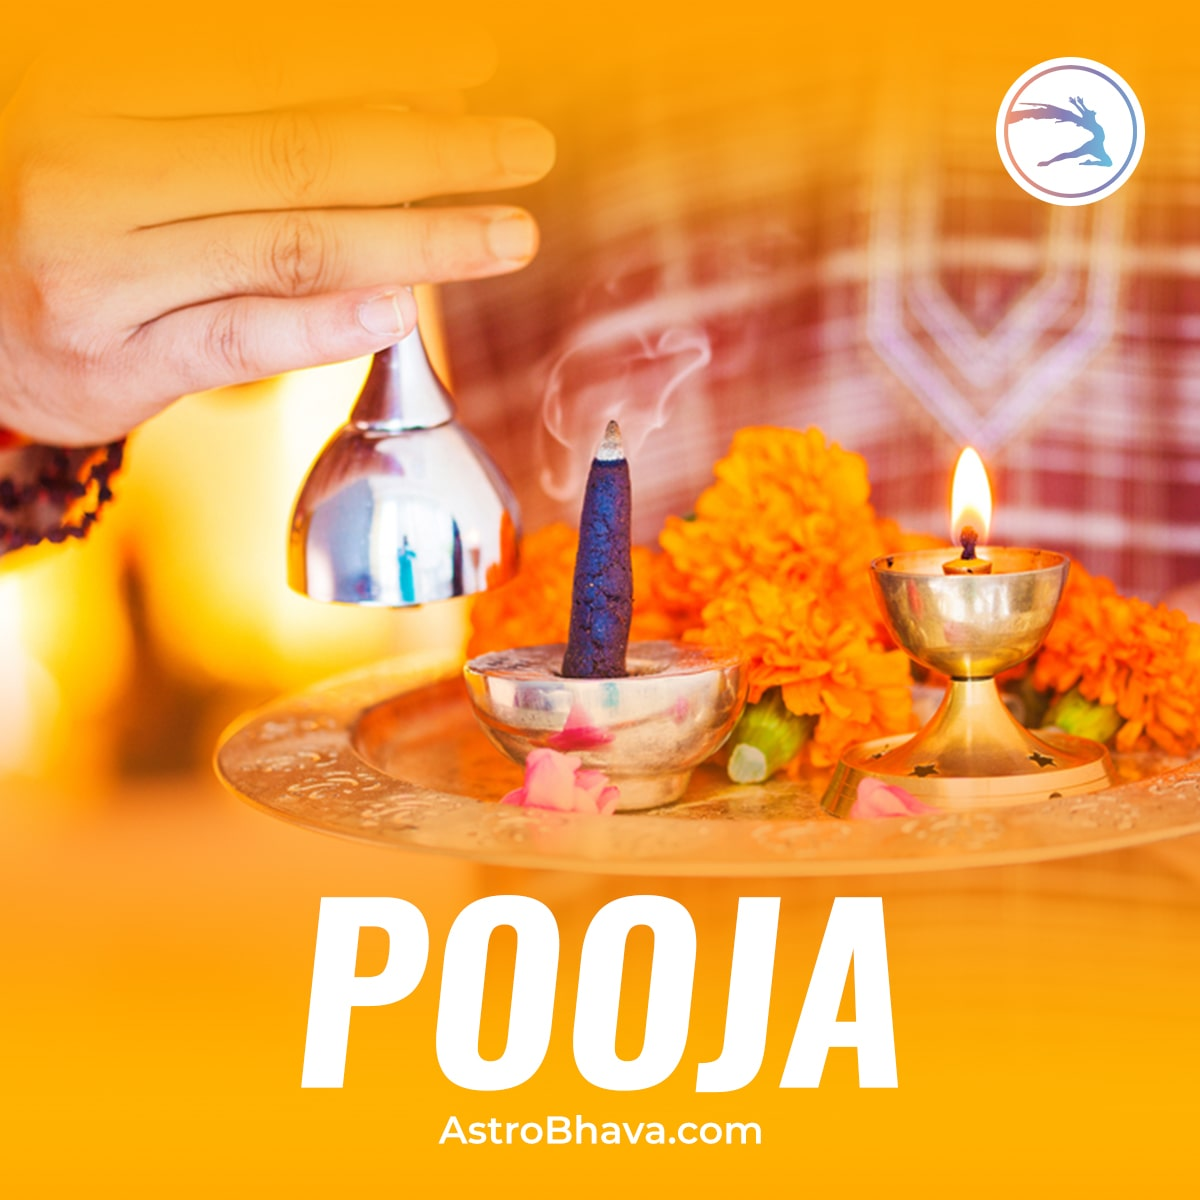 Book Online Puja Services with AstroBhava to Start the Day with a Spiritual Touch